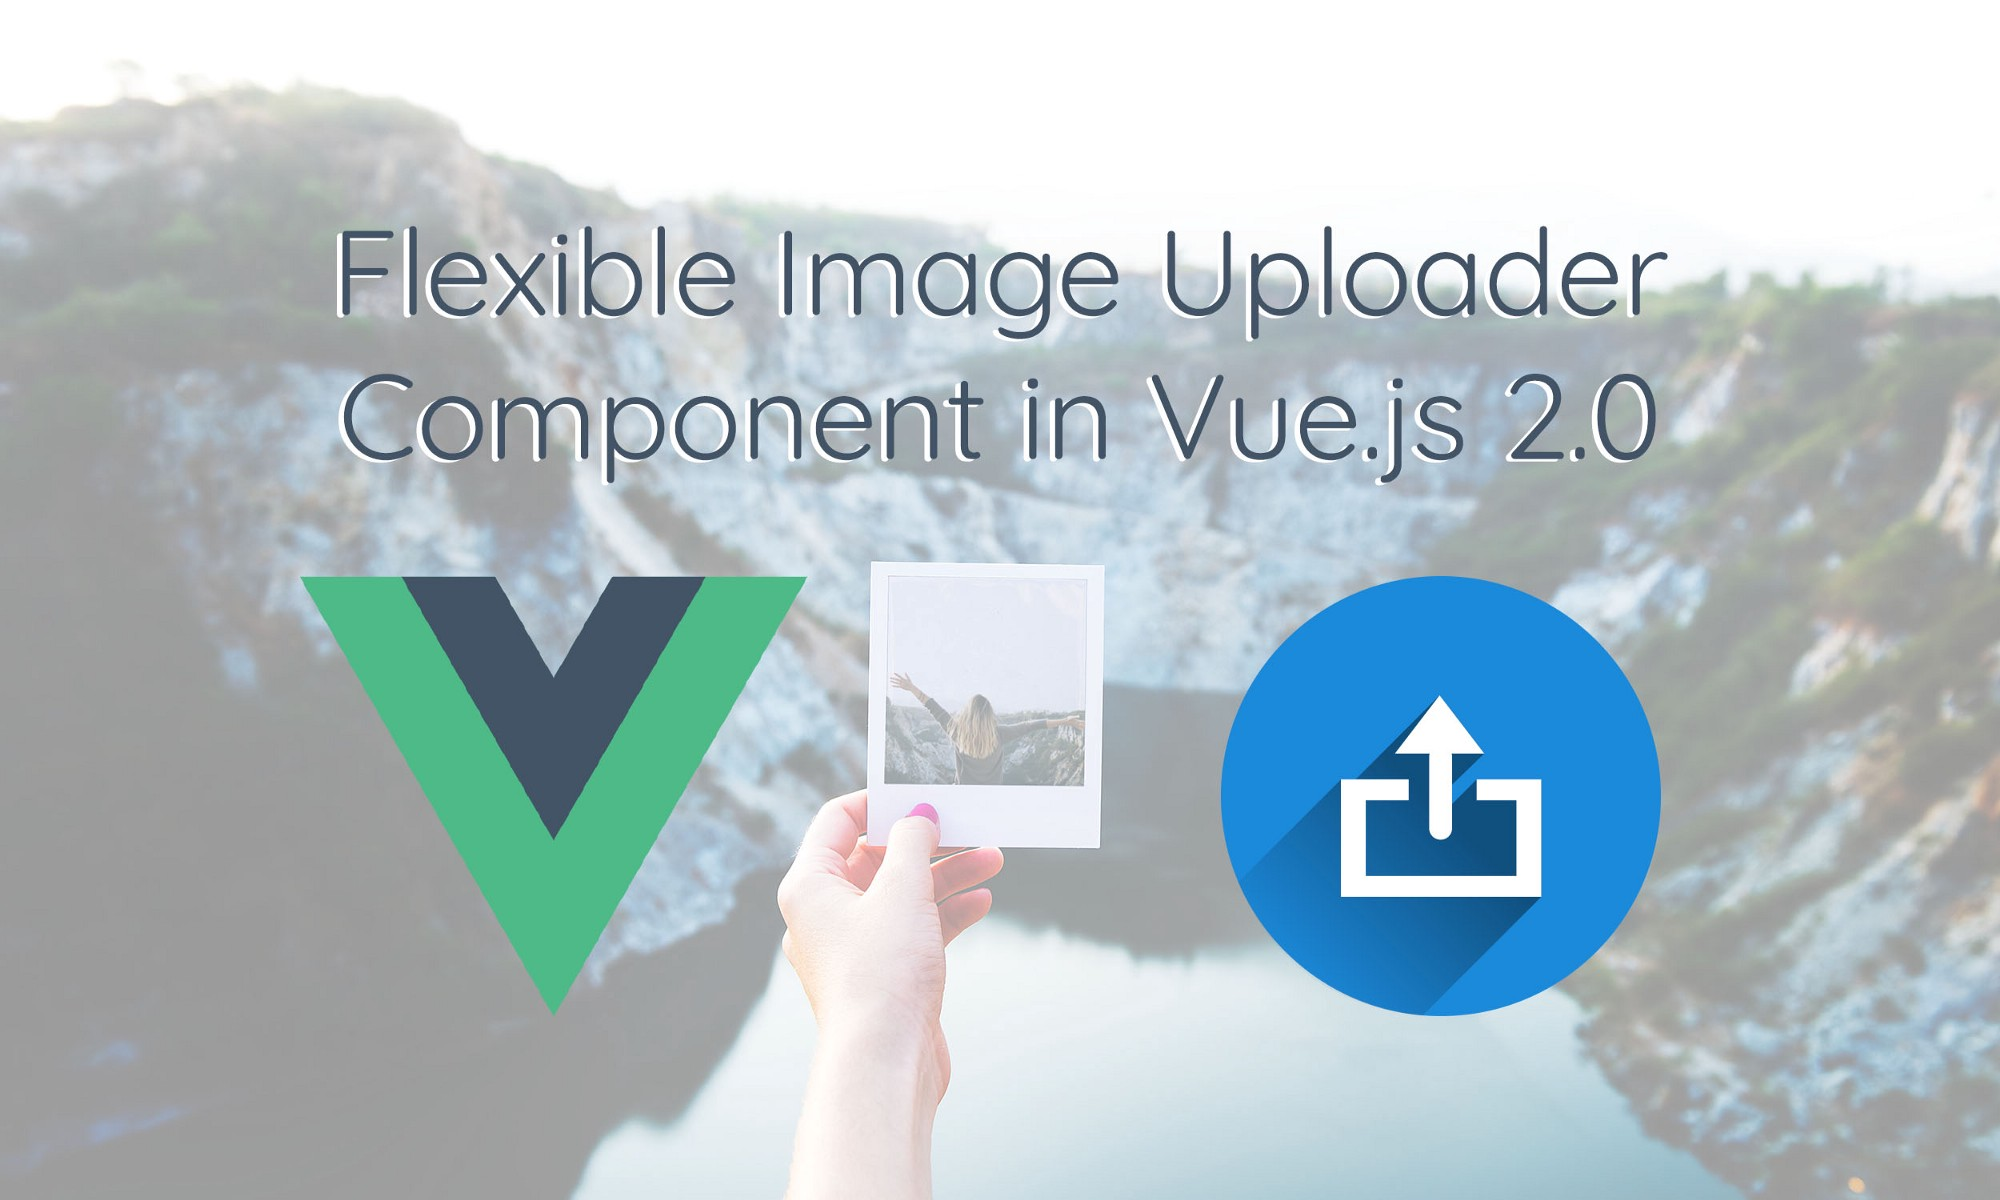 How to build a flexible image uploader component using Vue.js 2.0 ac2e8e24a26fe